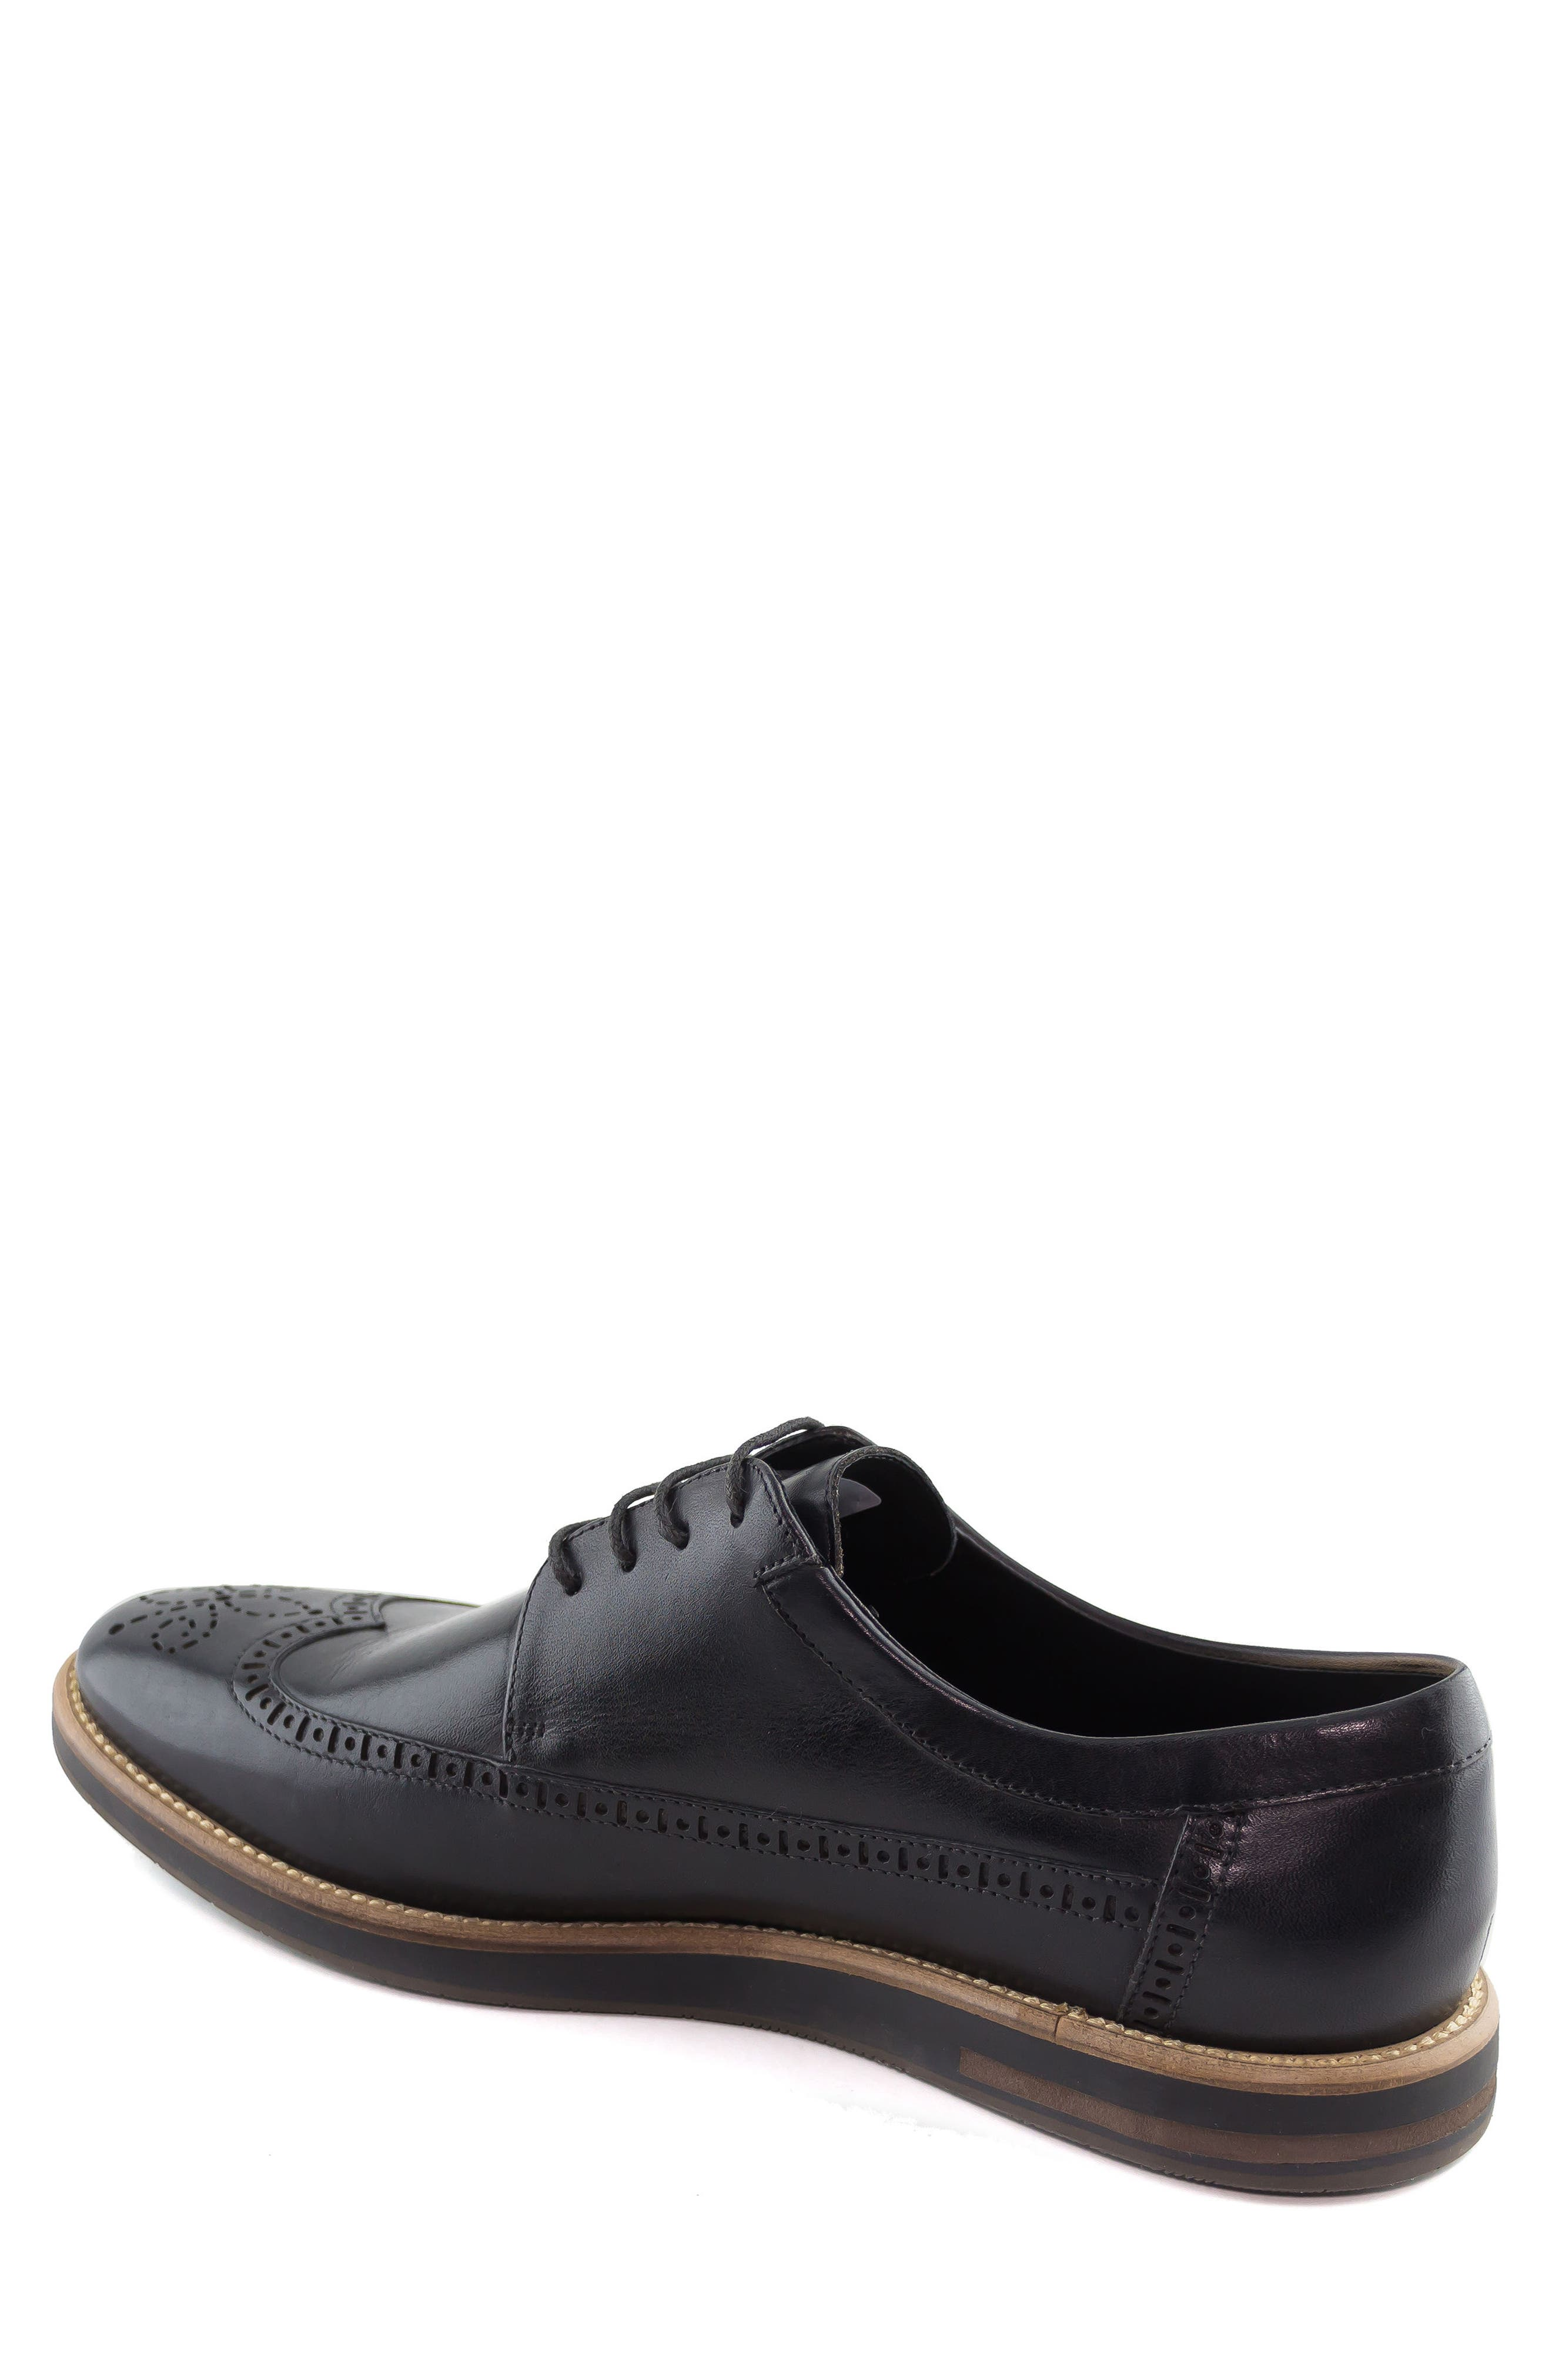 Marc Joseph New Yrok NYC Wingtip,                             Alternate thumbnail 3, color,